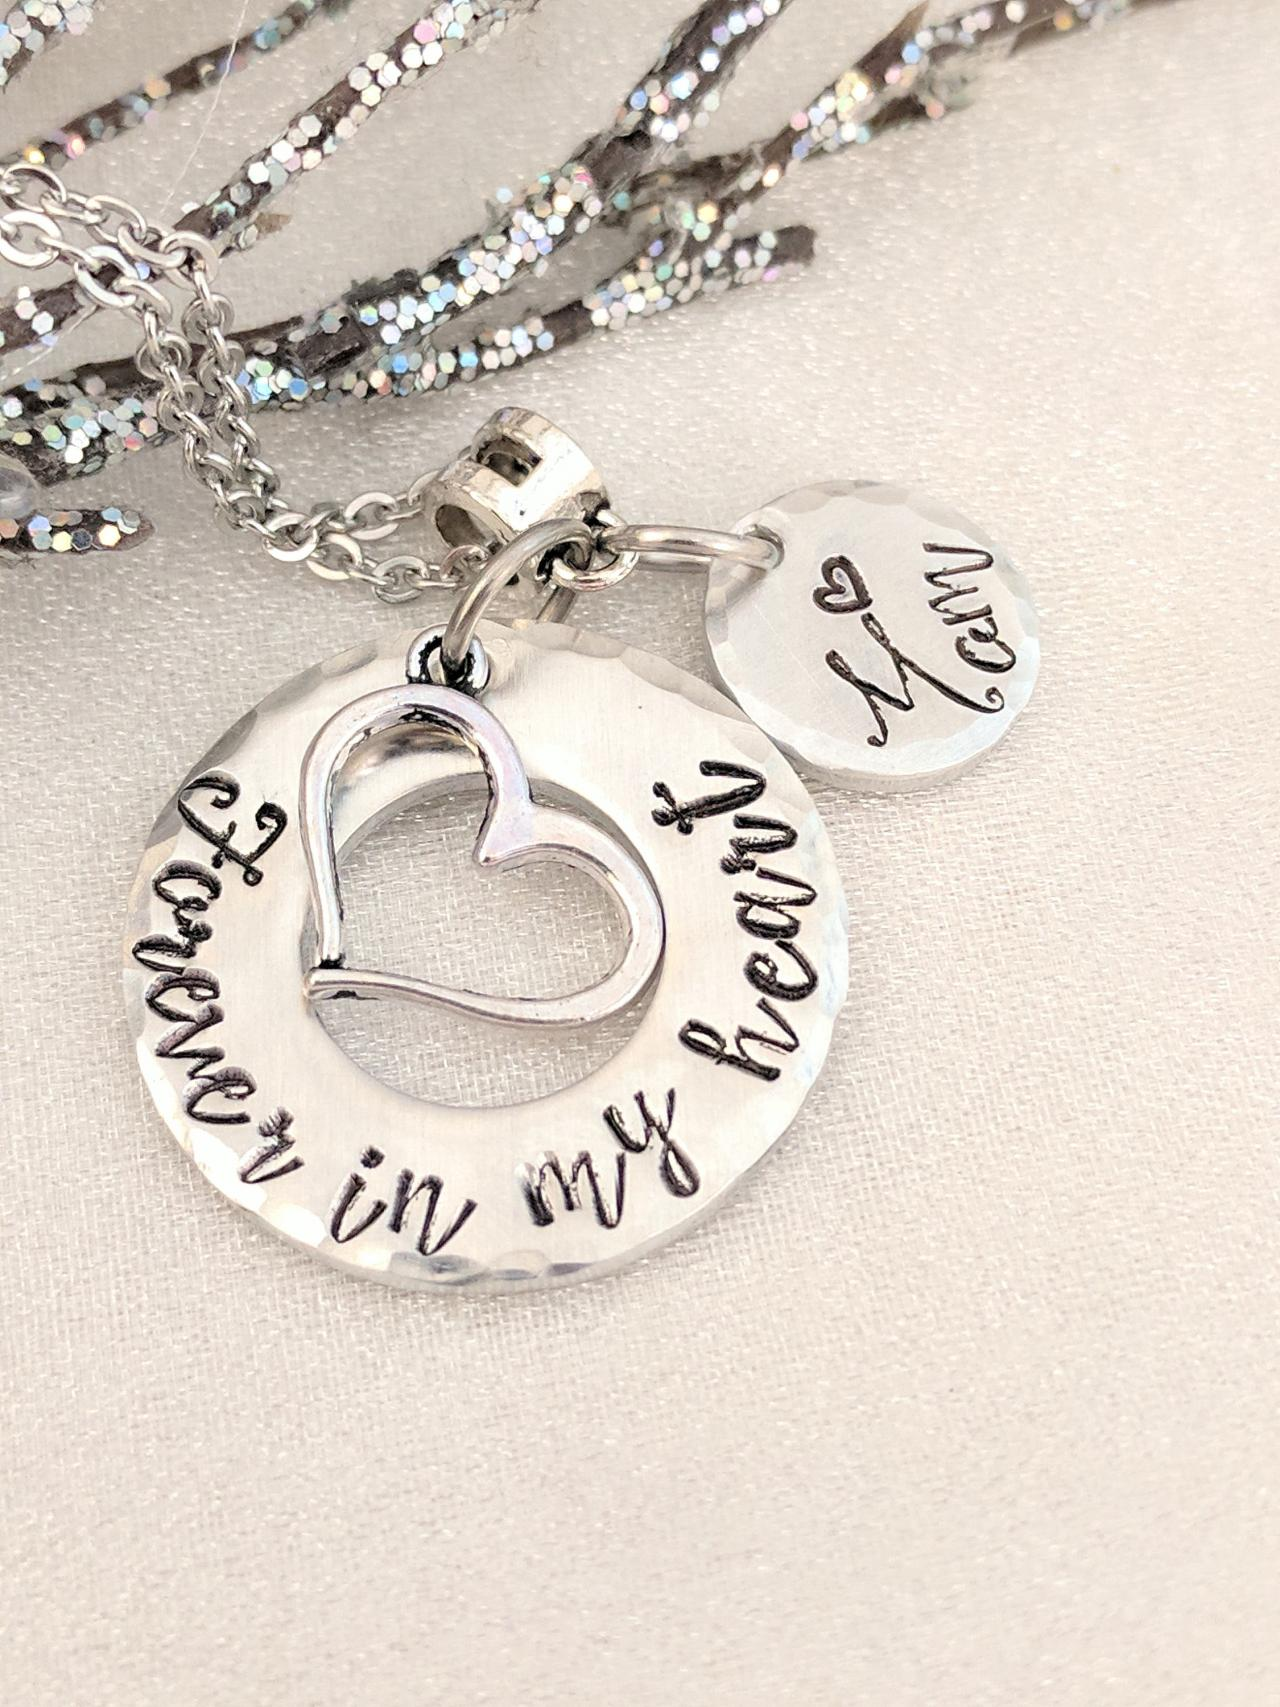 Remembrance Necklace - Memorial Jewelry - Loss Jewelry - Sympathy Gift - Bereavement Necklace - Memorial Keepsake Necklace - Personalized